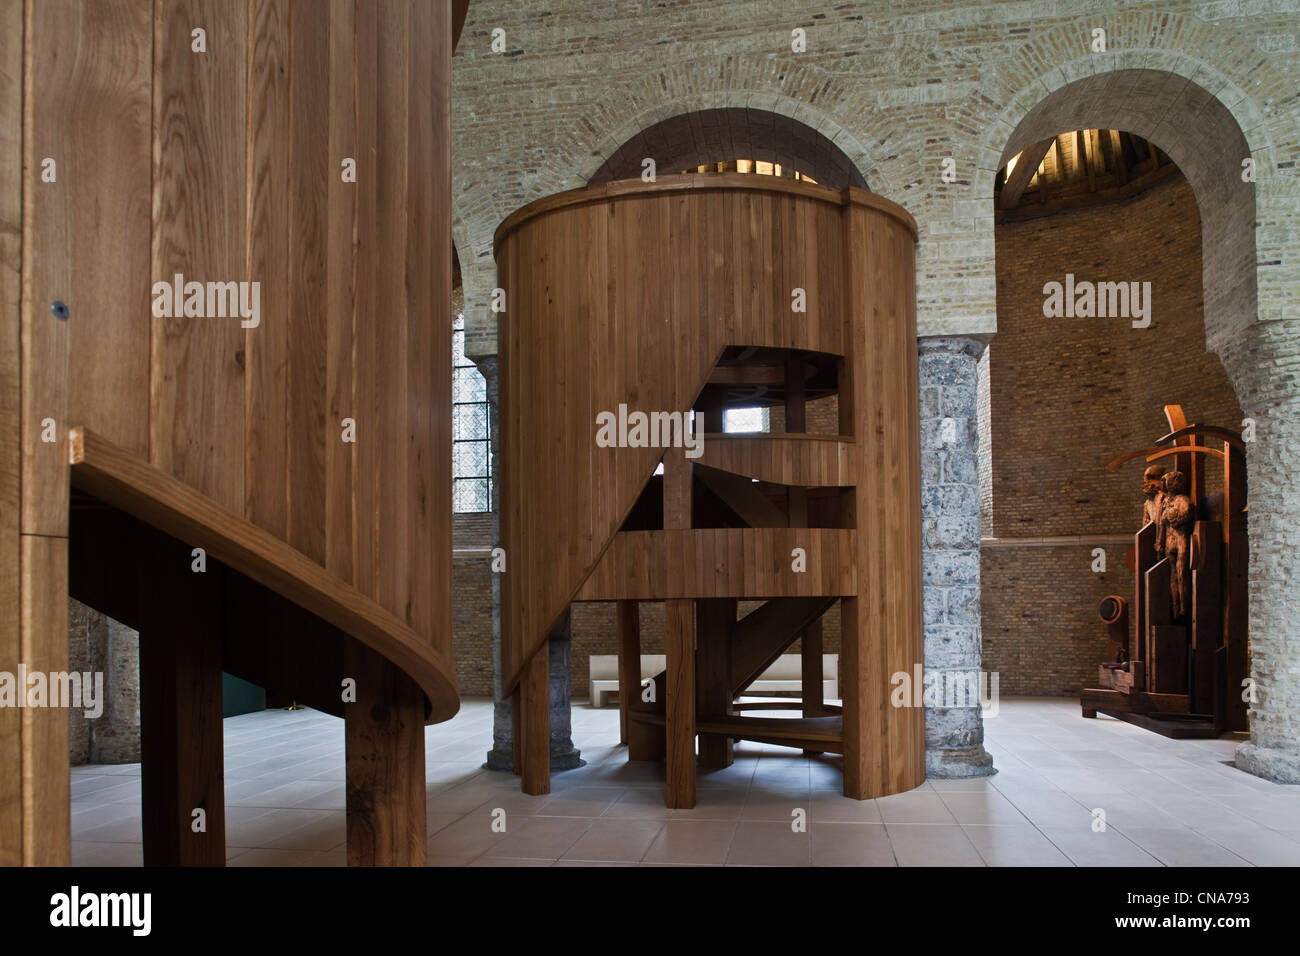 France, Nord, Bourbourg Church, Choeur De Lumiere (Light Choir) By Anthony